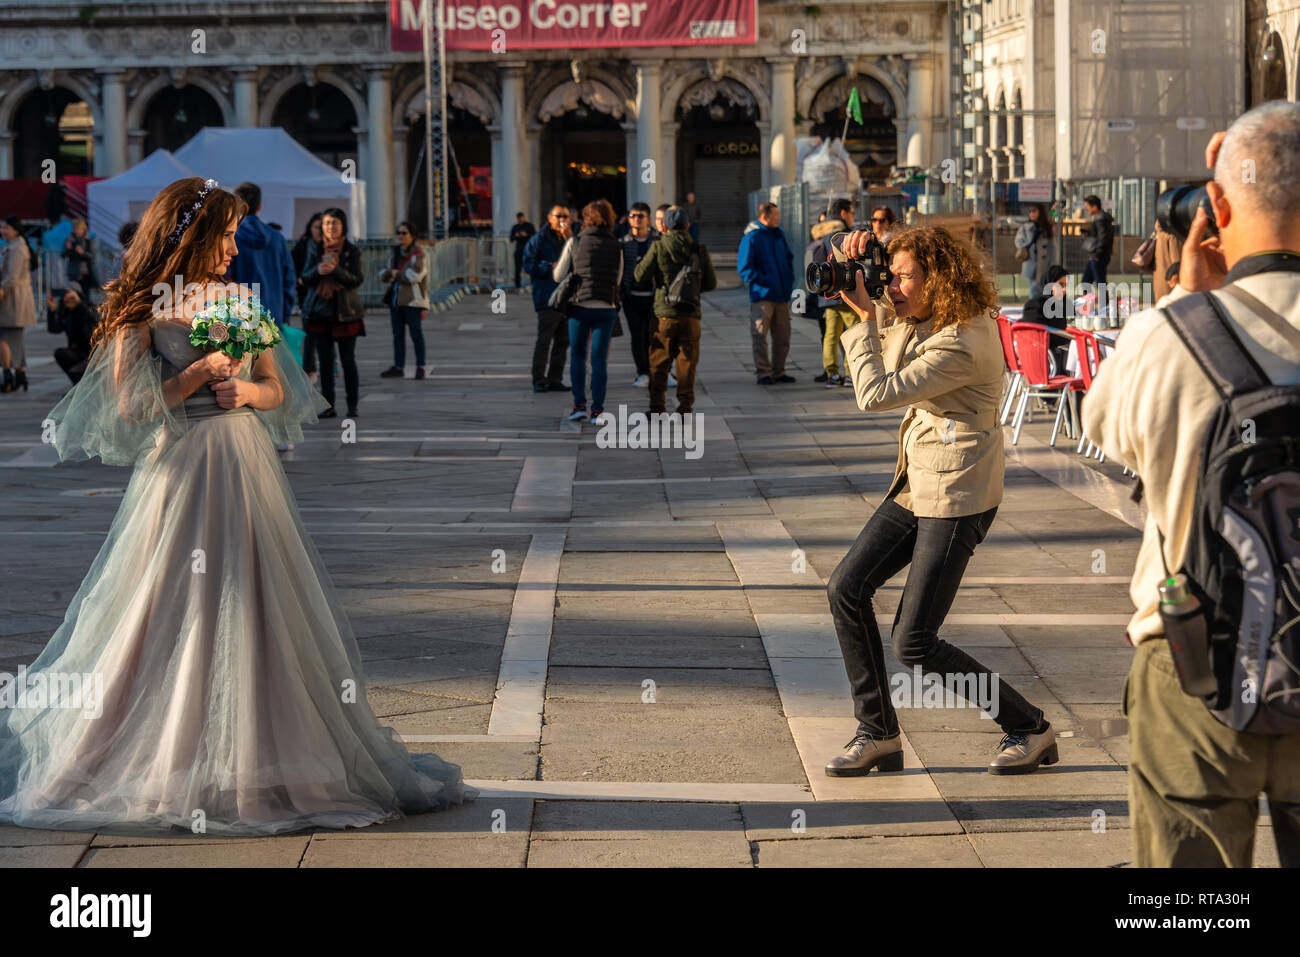 Wedding Fotoshooting on Piazza San Marco - Stock Image